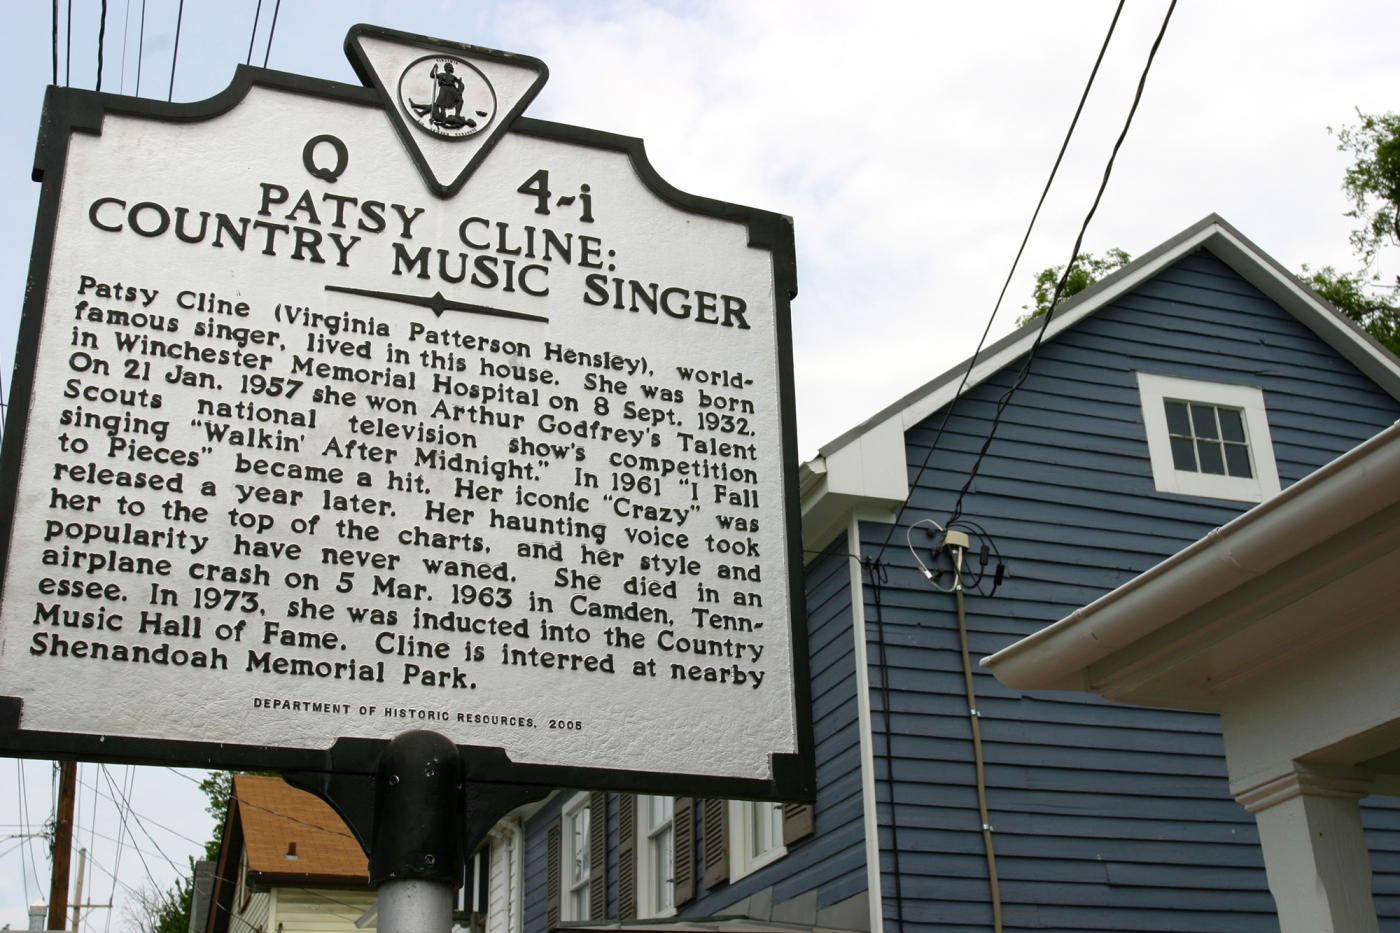 Birthplace of country singer Patsy Cline in Winchester, VA. Photo: ©Virginia Tourism Corporation